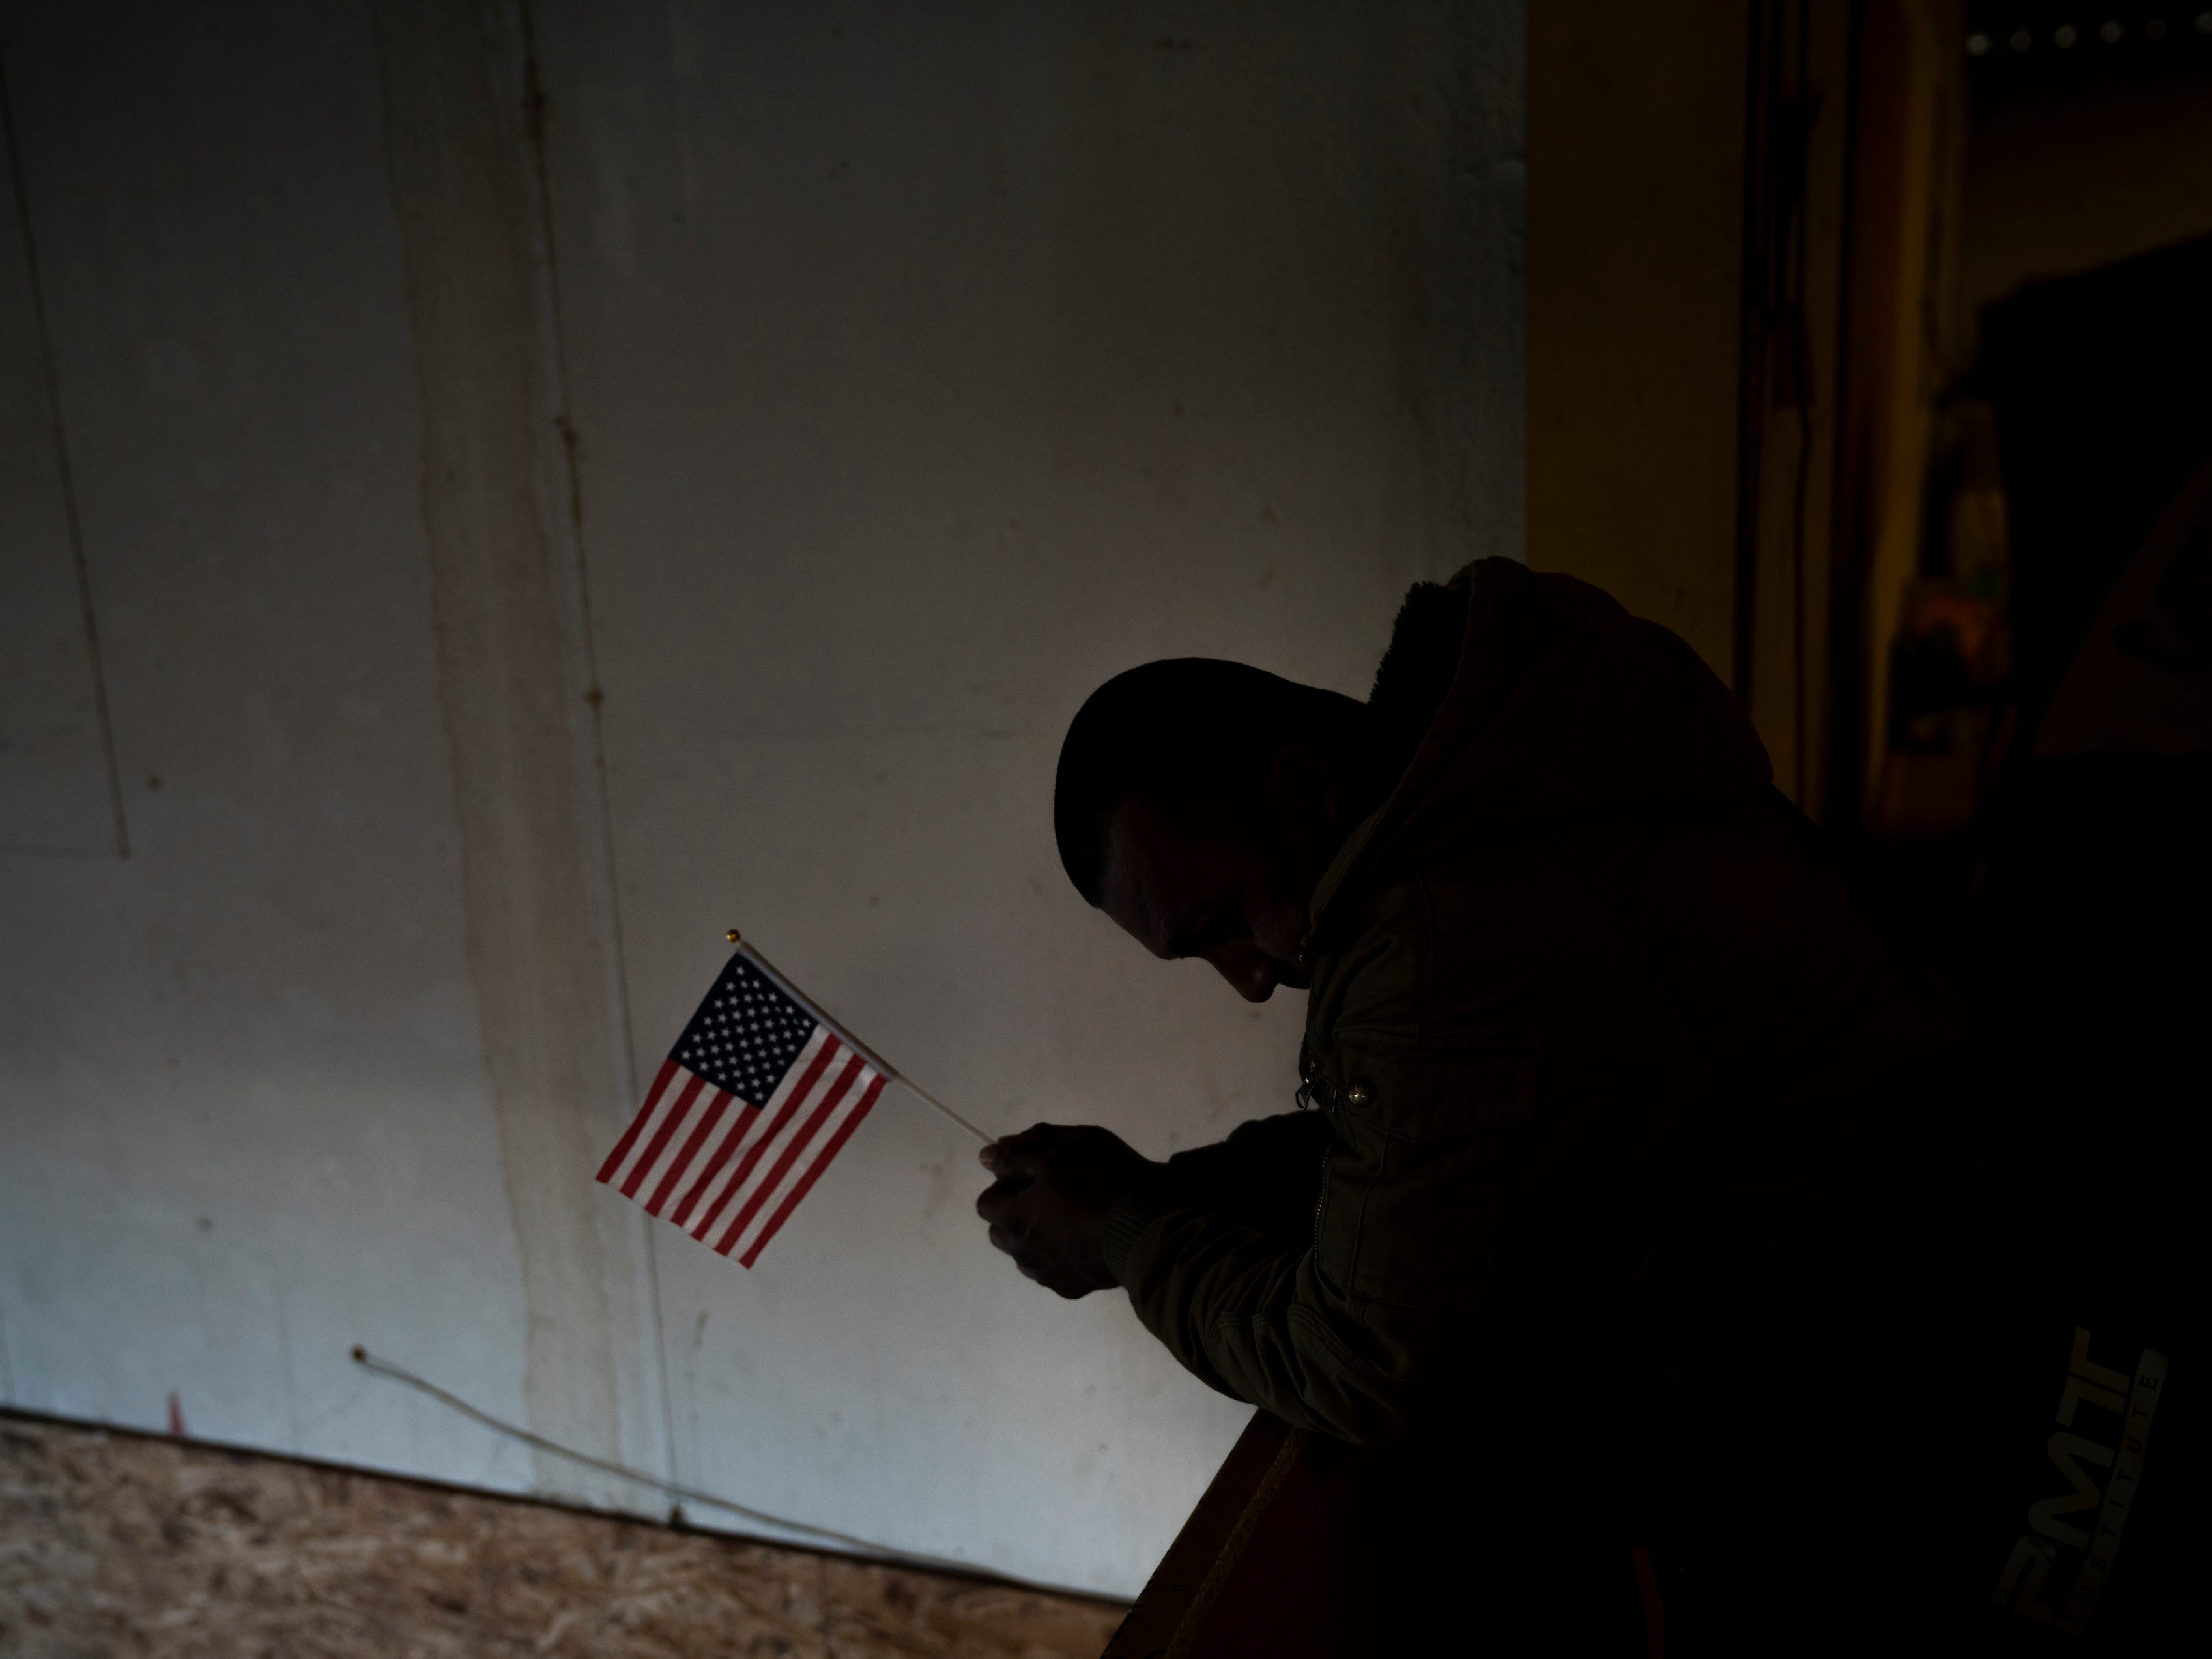 A migrant from Honduras holds a U.S. flag inside an empty warehouse used as a shelter set up for migrants in downtown Tijuana, before been relocated to other shelters in Tijuana, Mexico, Friday, Jan. 4, 2019.